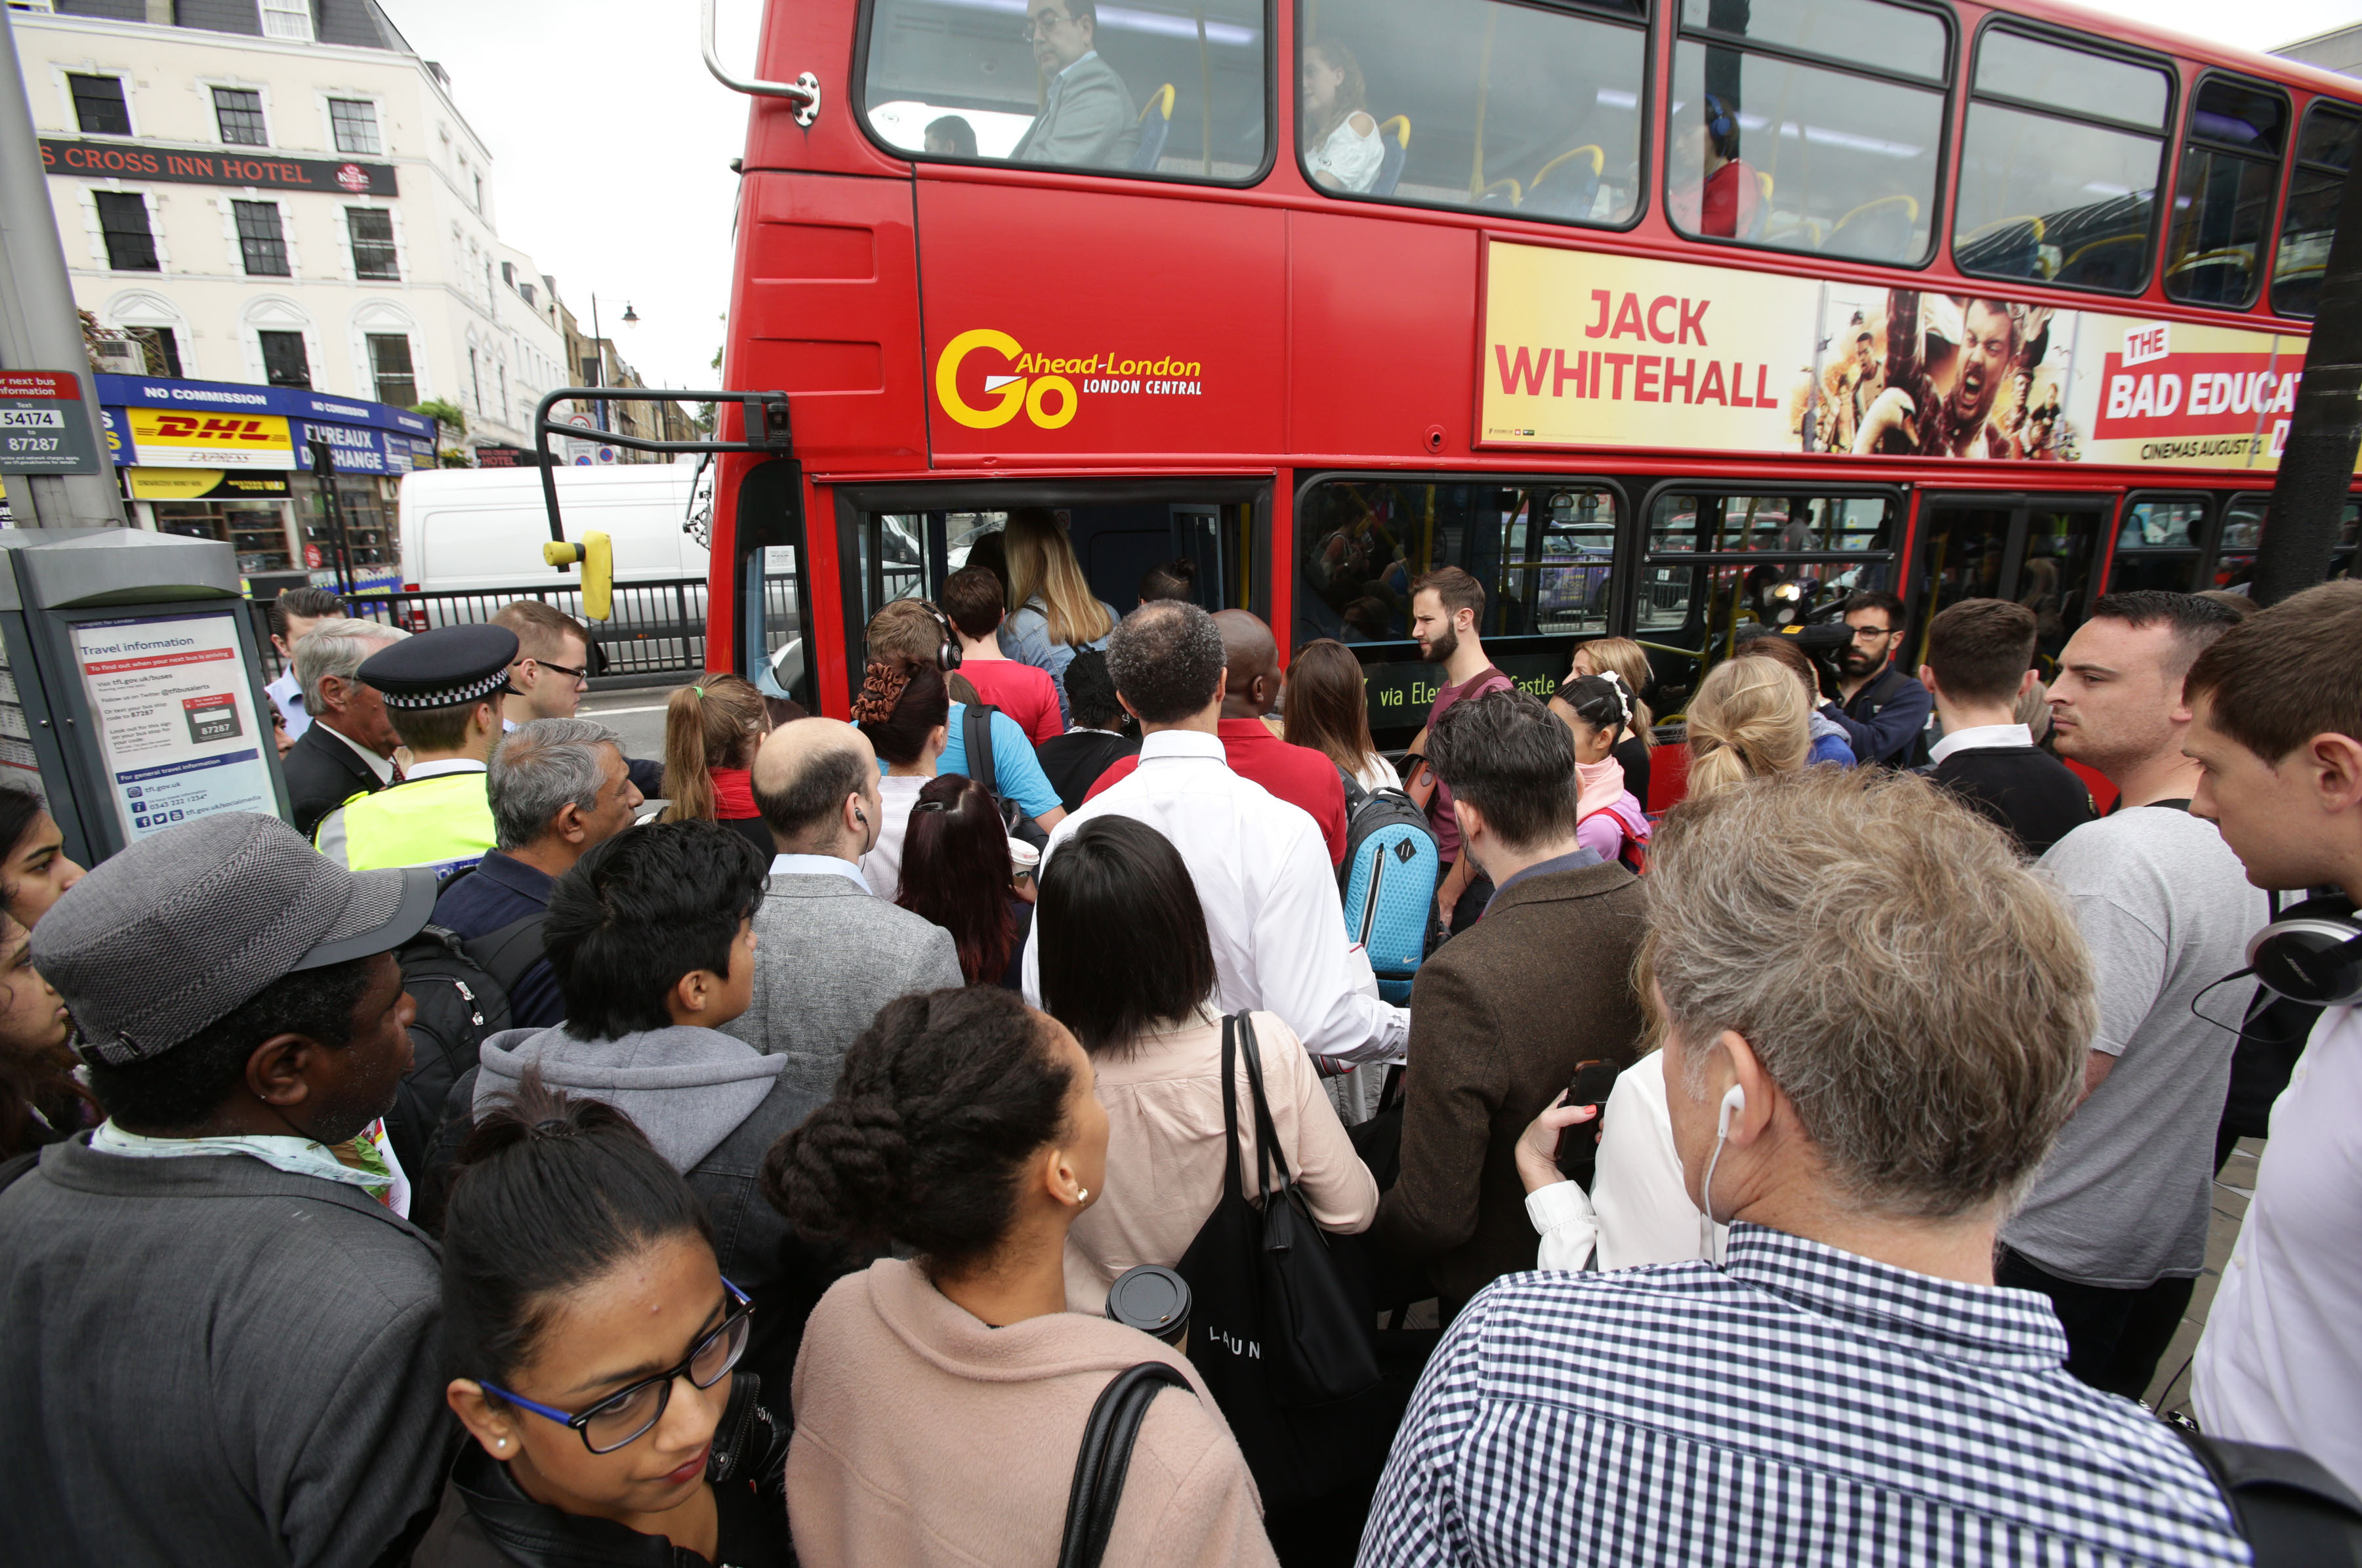 Buses Are Expected To Be Busier Than Usual